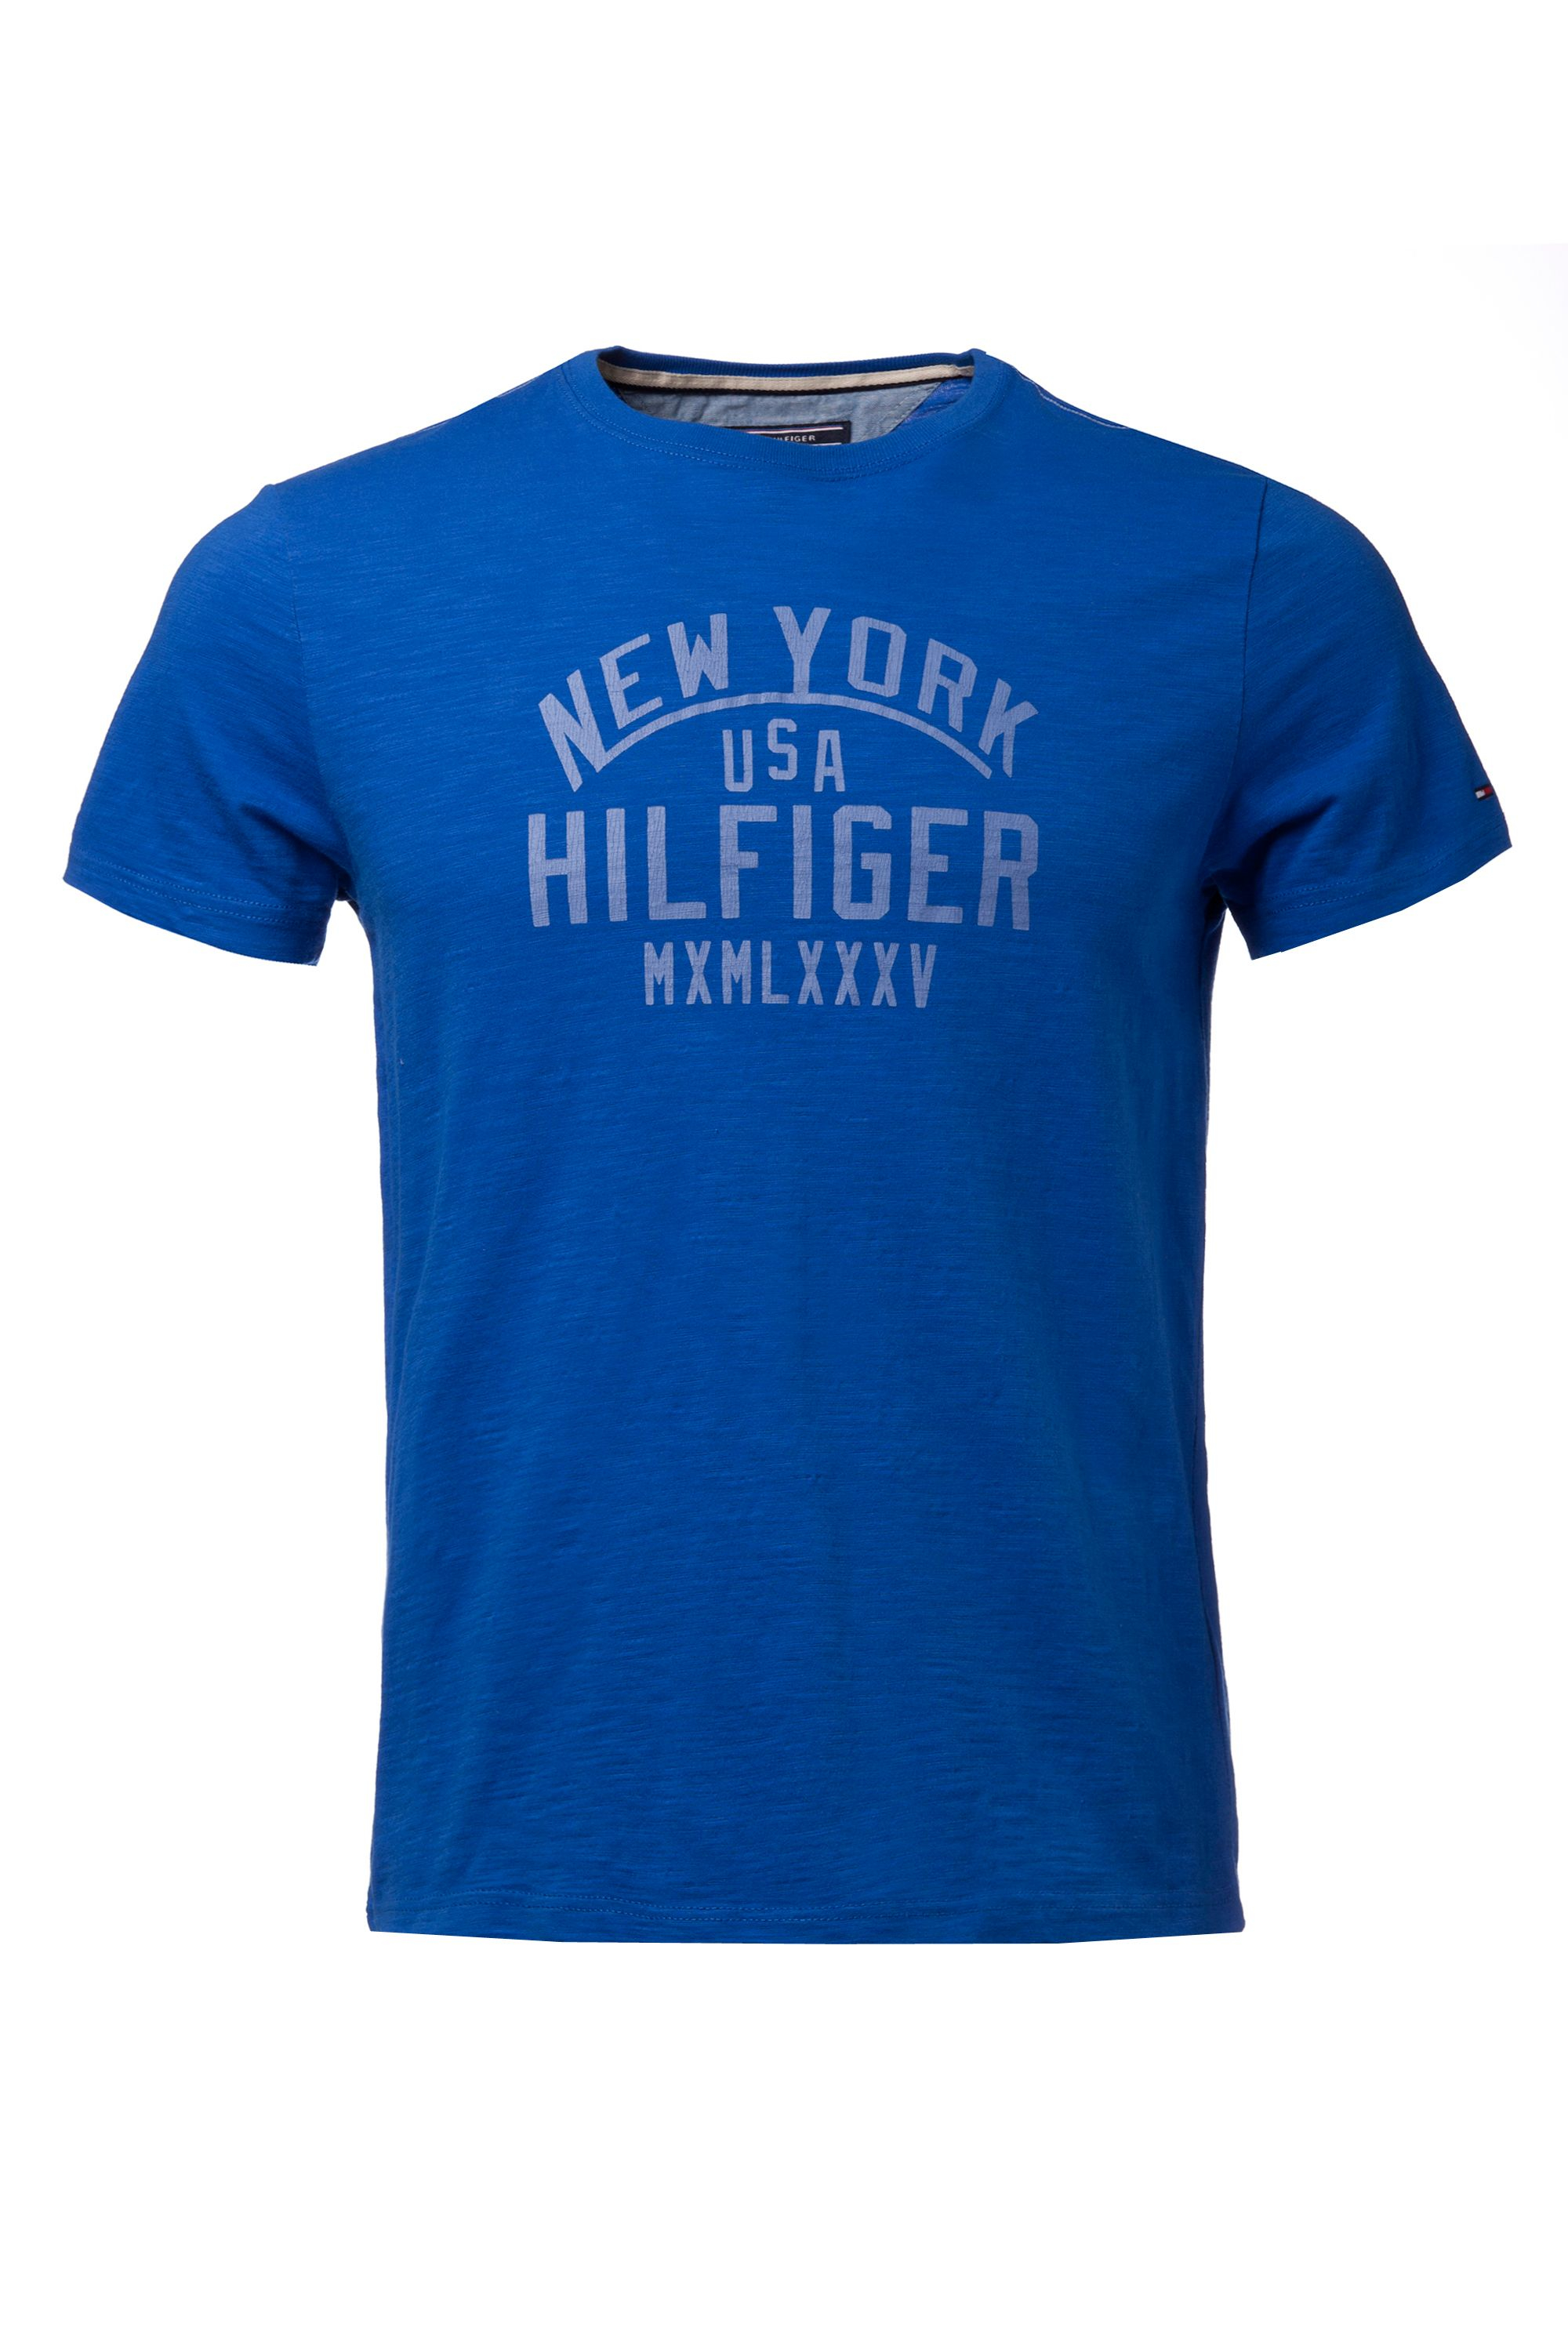 tommy hilfiger harry t shirt in blue for men lyst. Black Bedroom Furniture Sets. Home Design Ideas